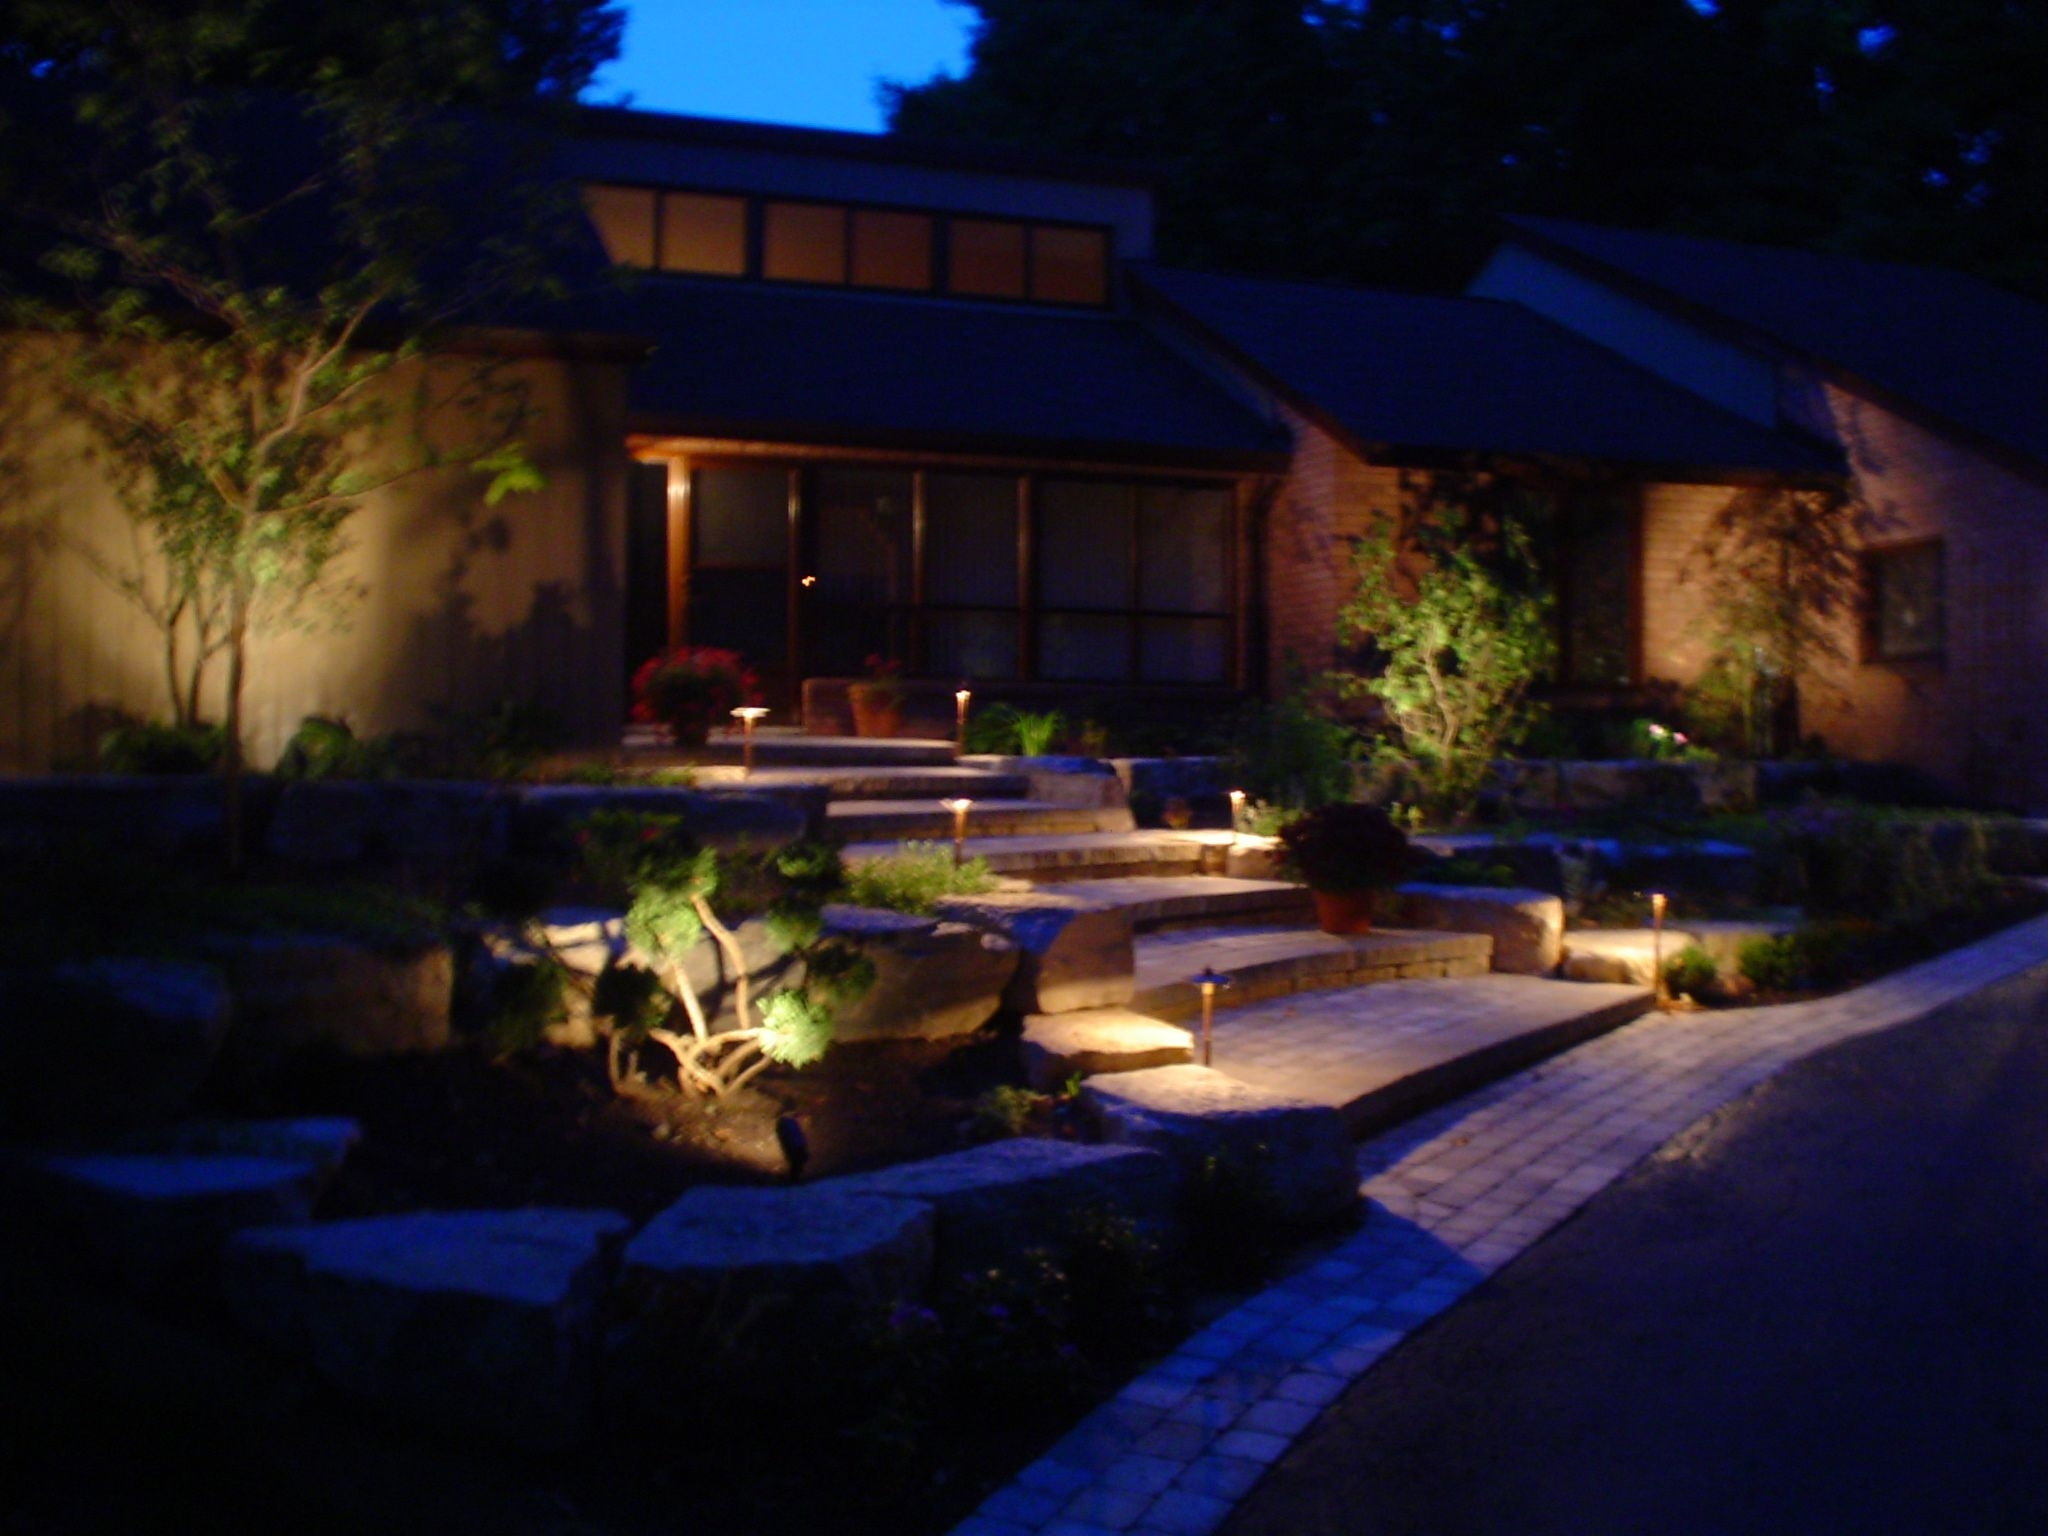 Recent Outdoor Low Voltage Lanterns With Backyard++Landscaping+Lighting (Gallery 9 of 20)